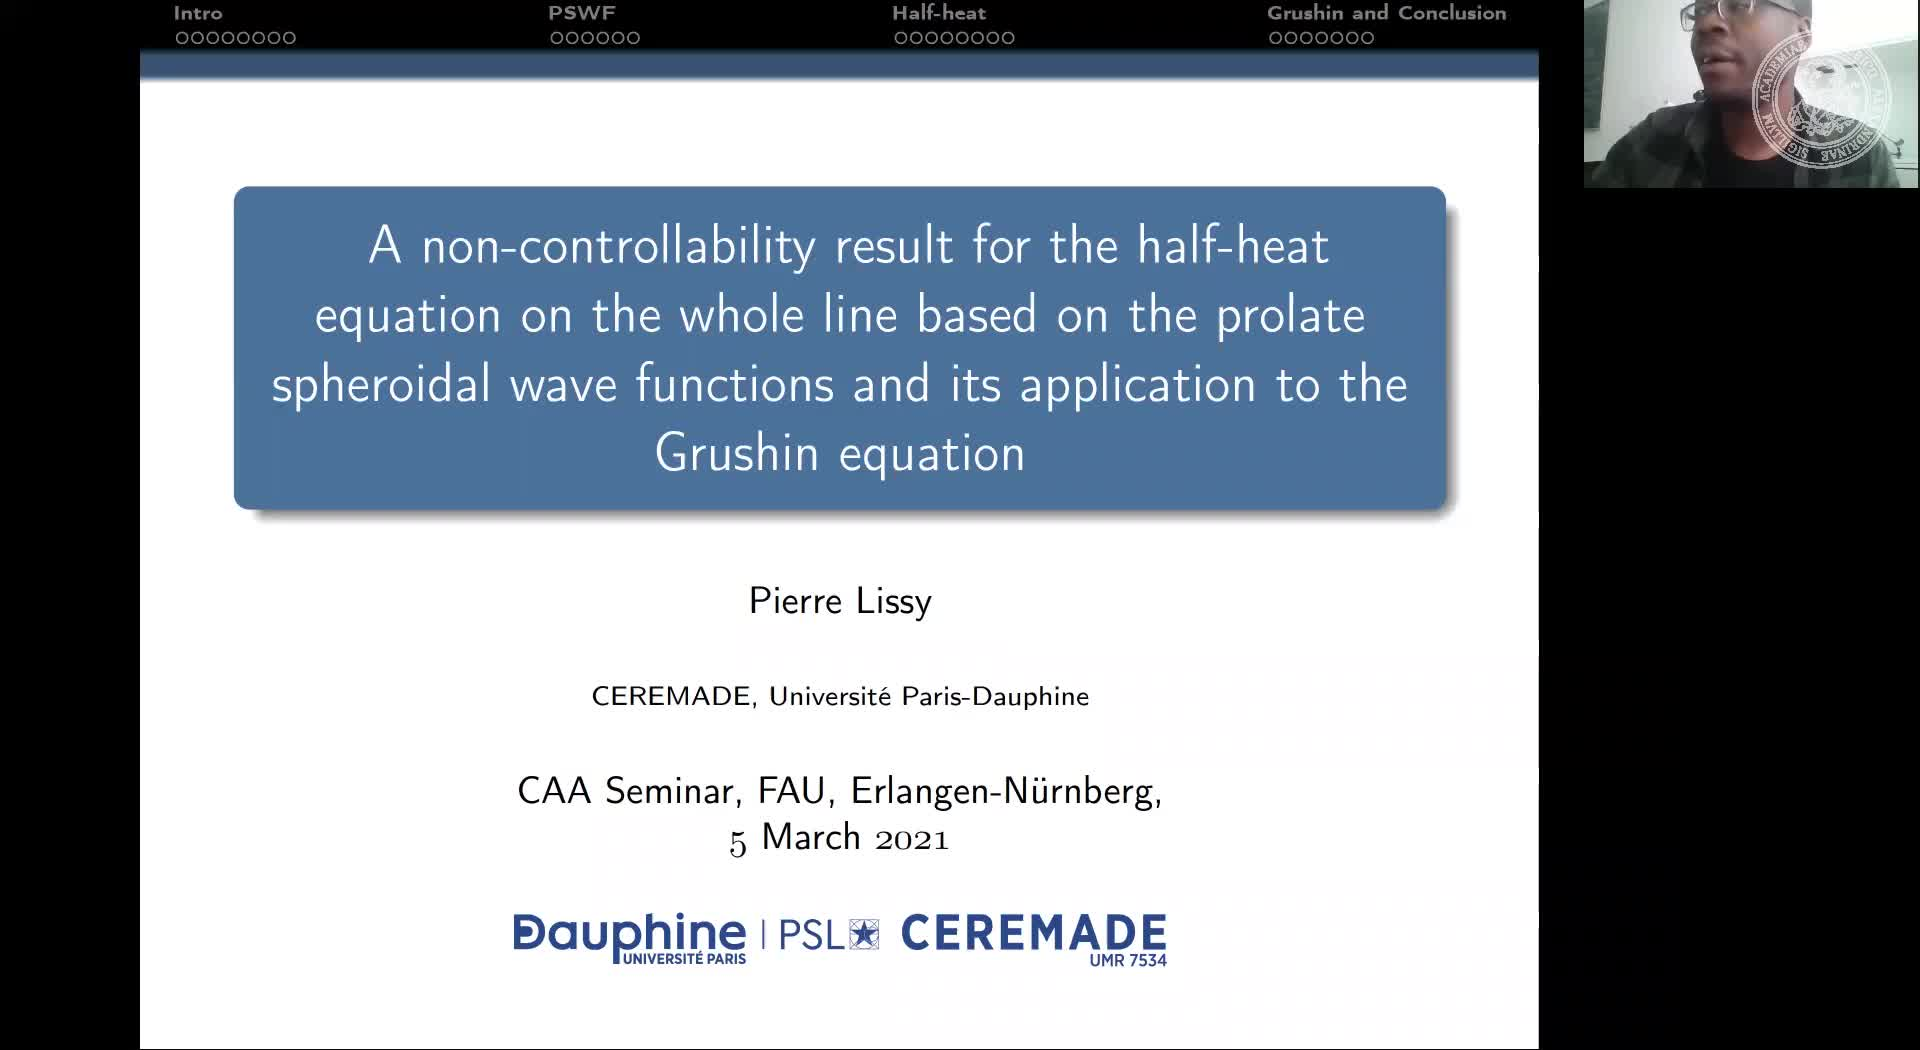 A non-controllability result for the half-heat equation on the whole line based on the prolate spheroidal wave functions and its application to the Grushin equation (P. Lissy, Université Paris-Dauphine, France) preview image